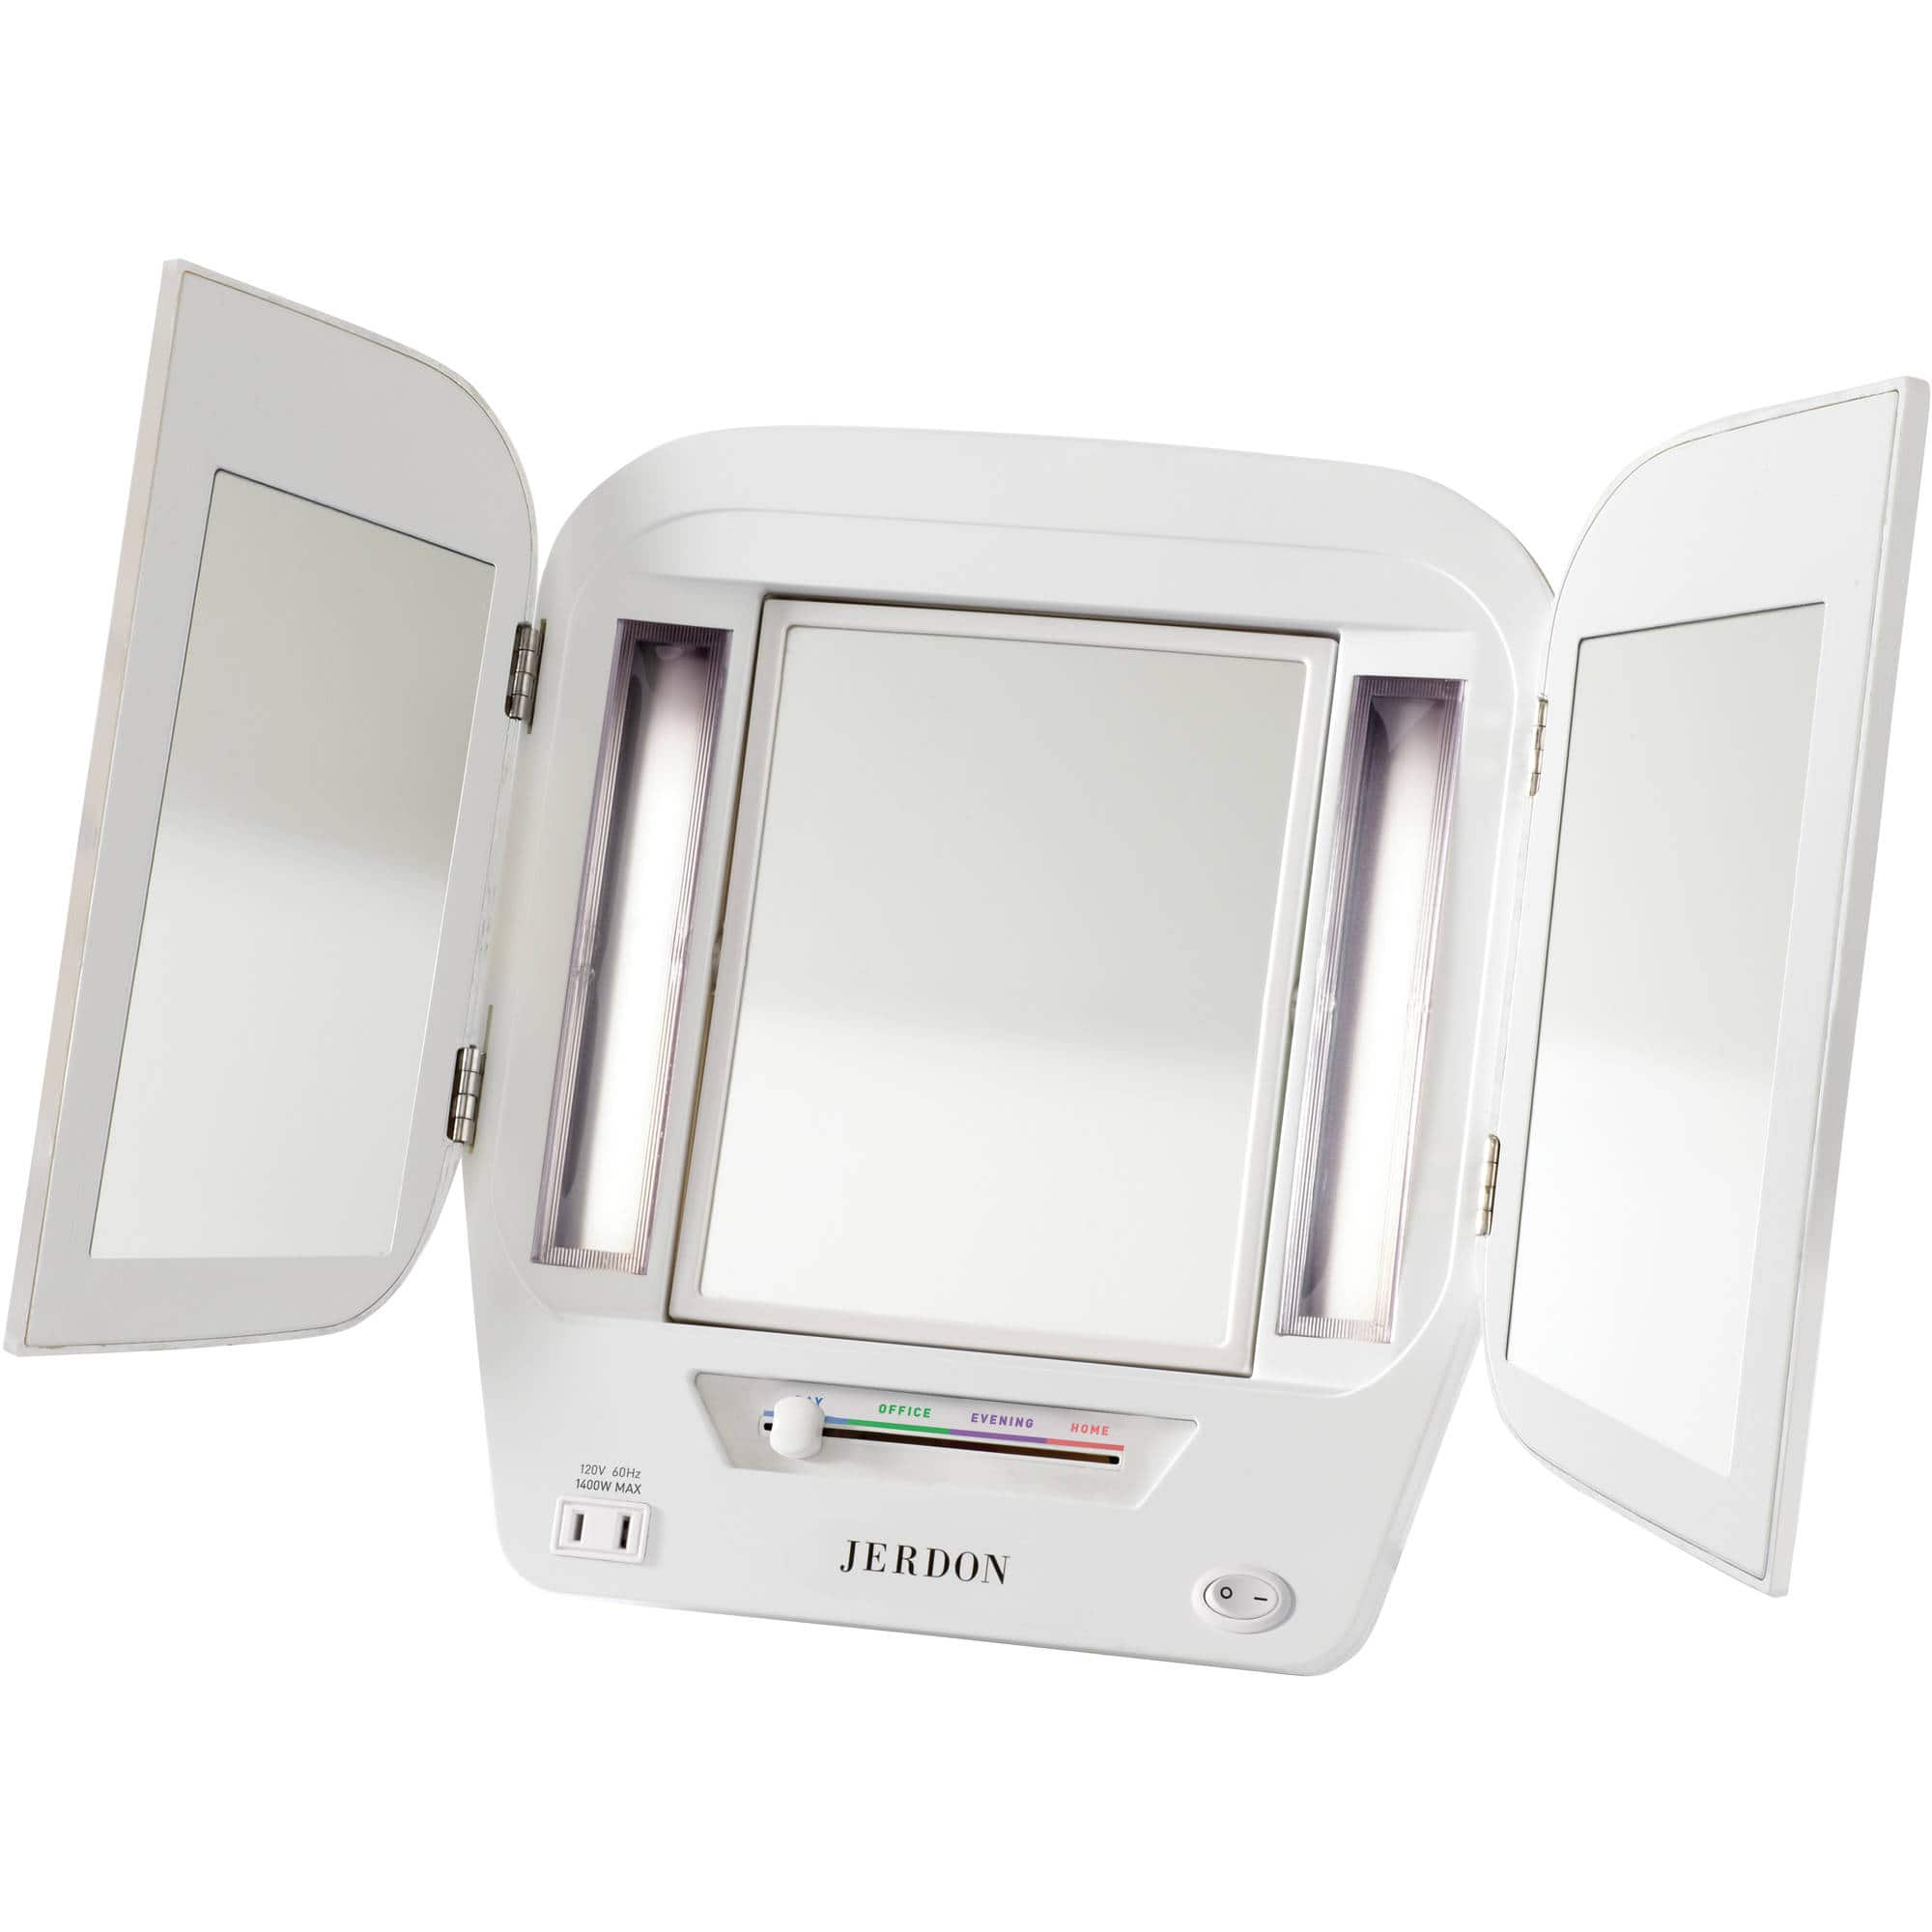 Jerdon Lighted Makeup Mirror with 5x Magnification (White) $26.42 + Free shipping w/ Prime